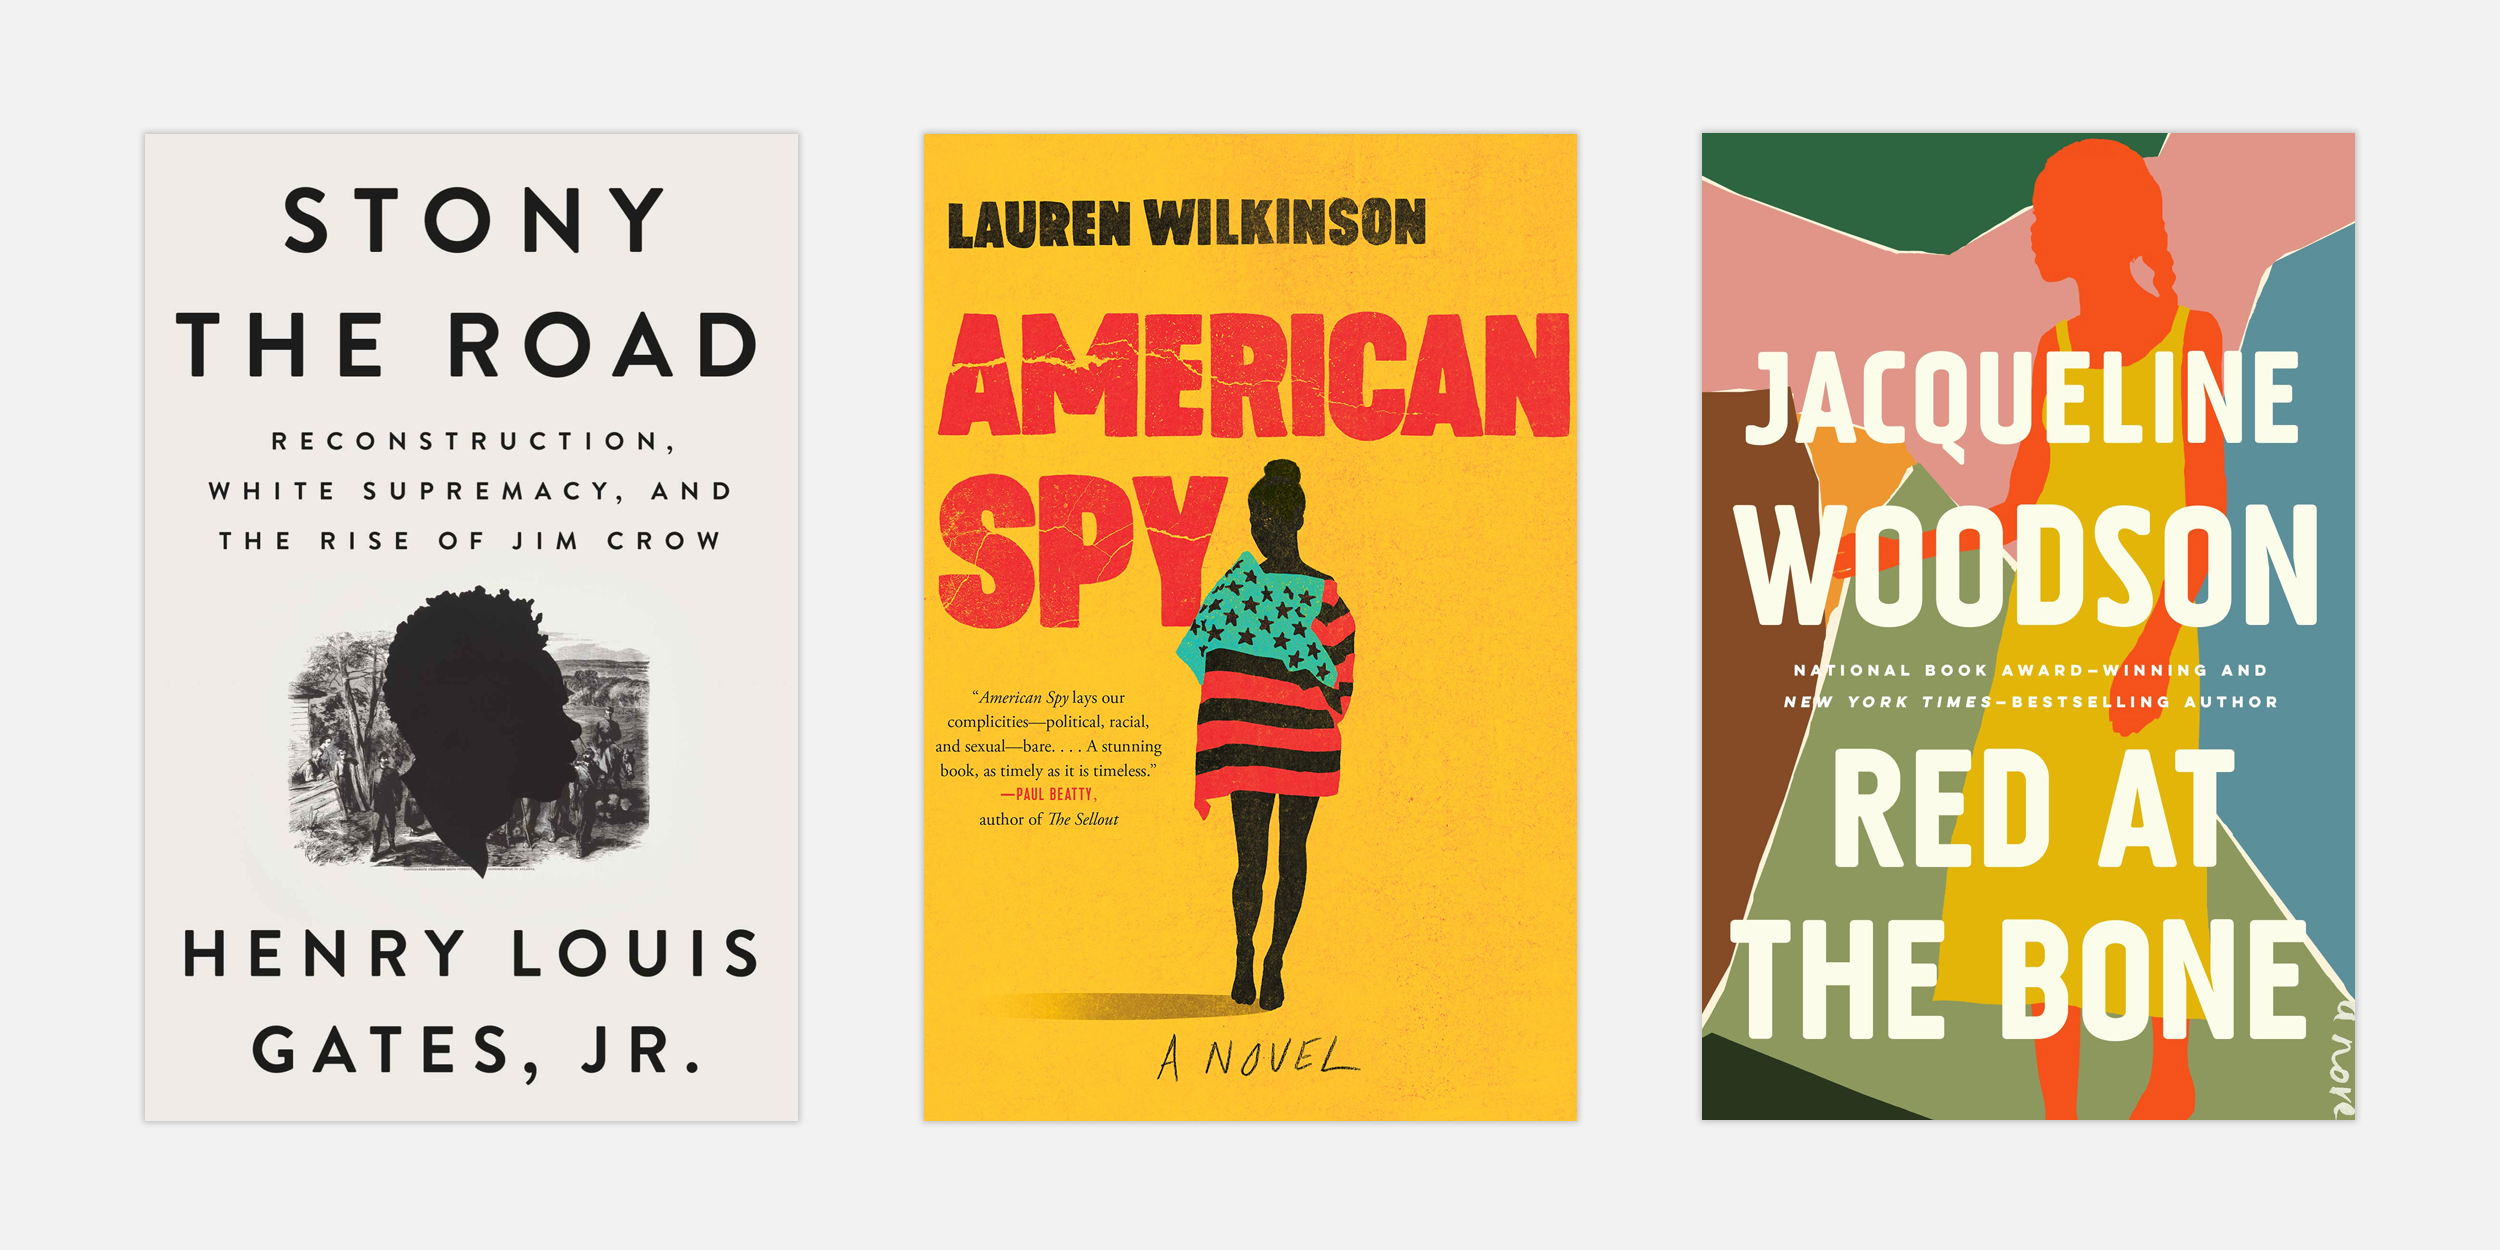 40 Best African American Books According To The Naacp